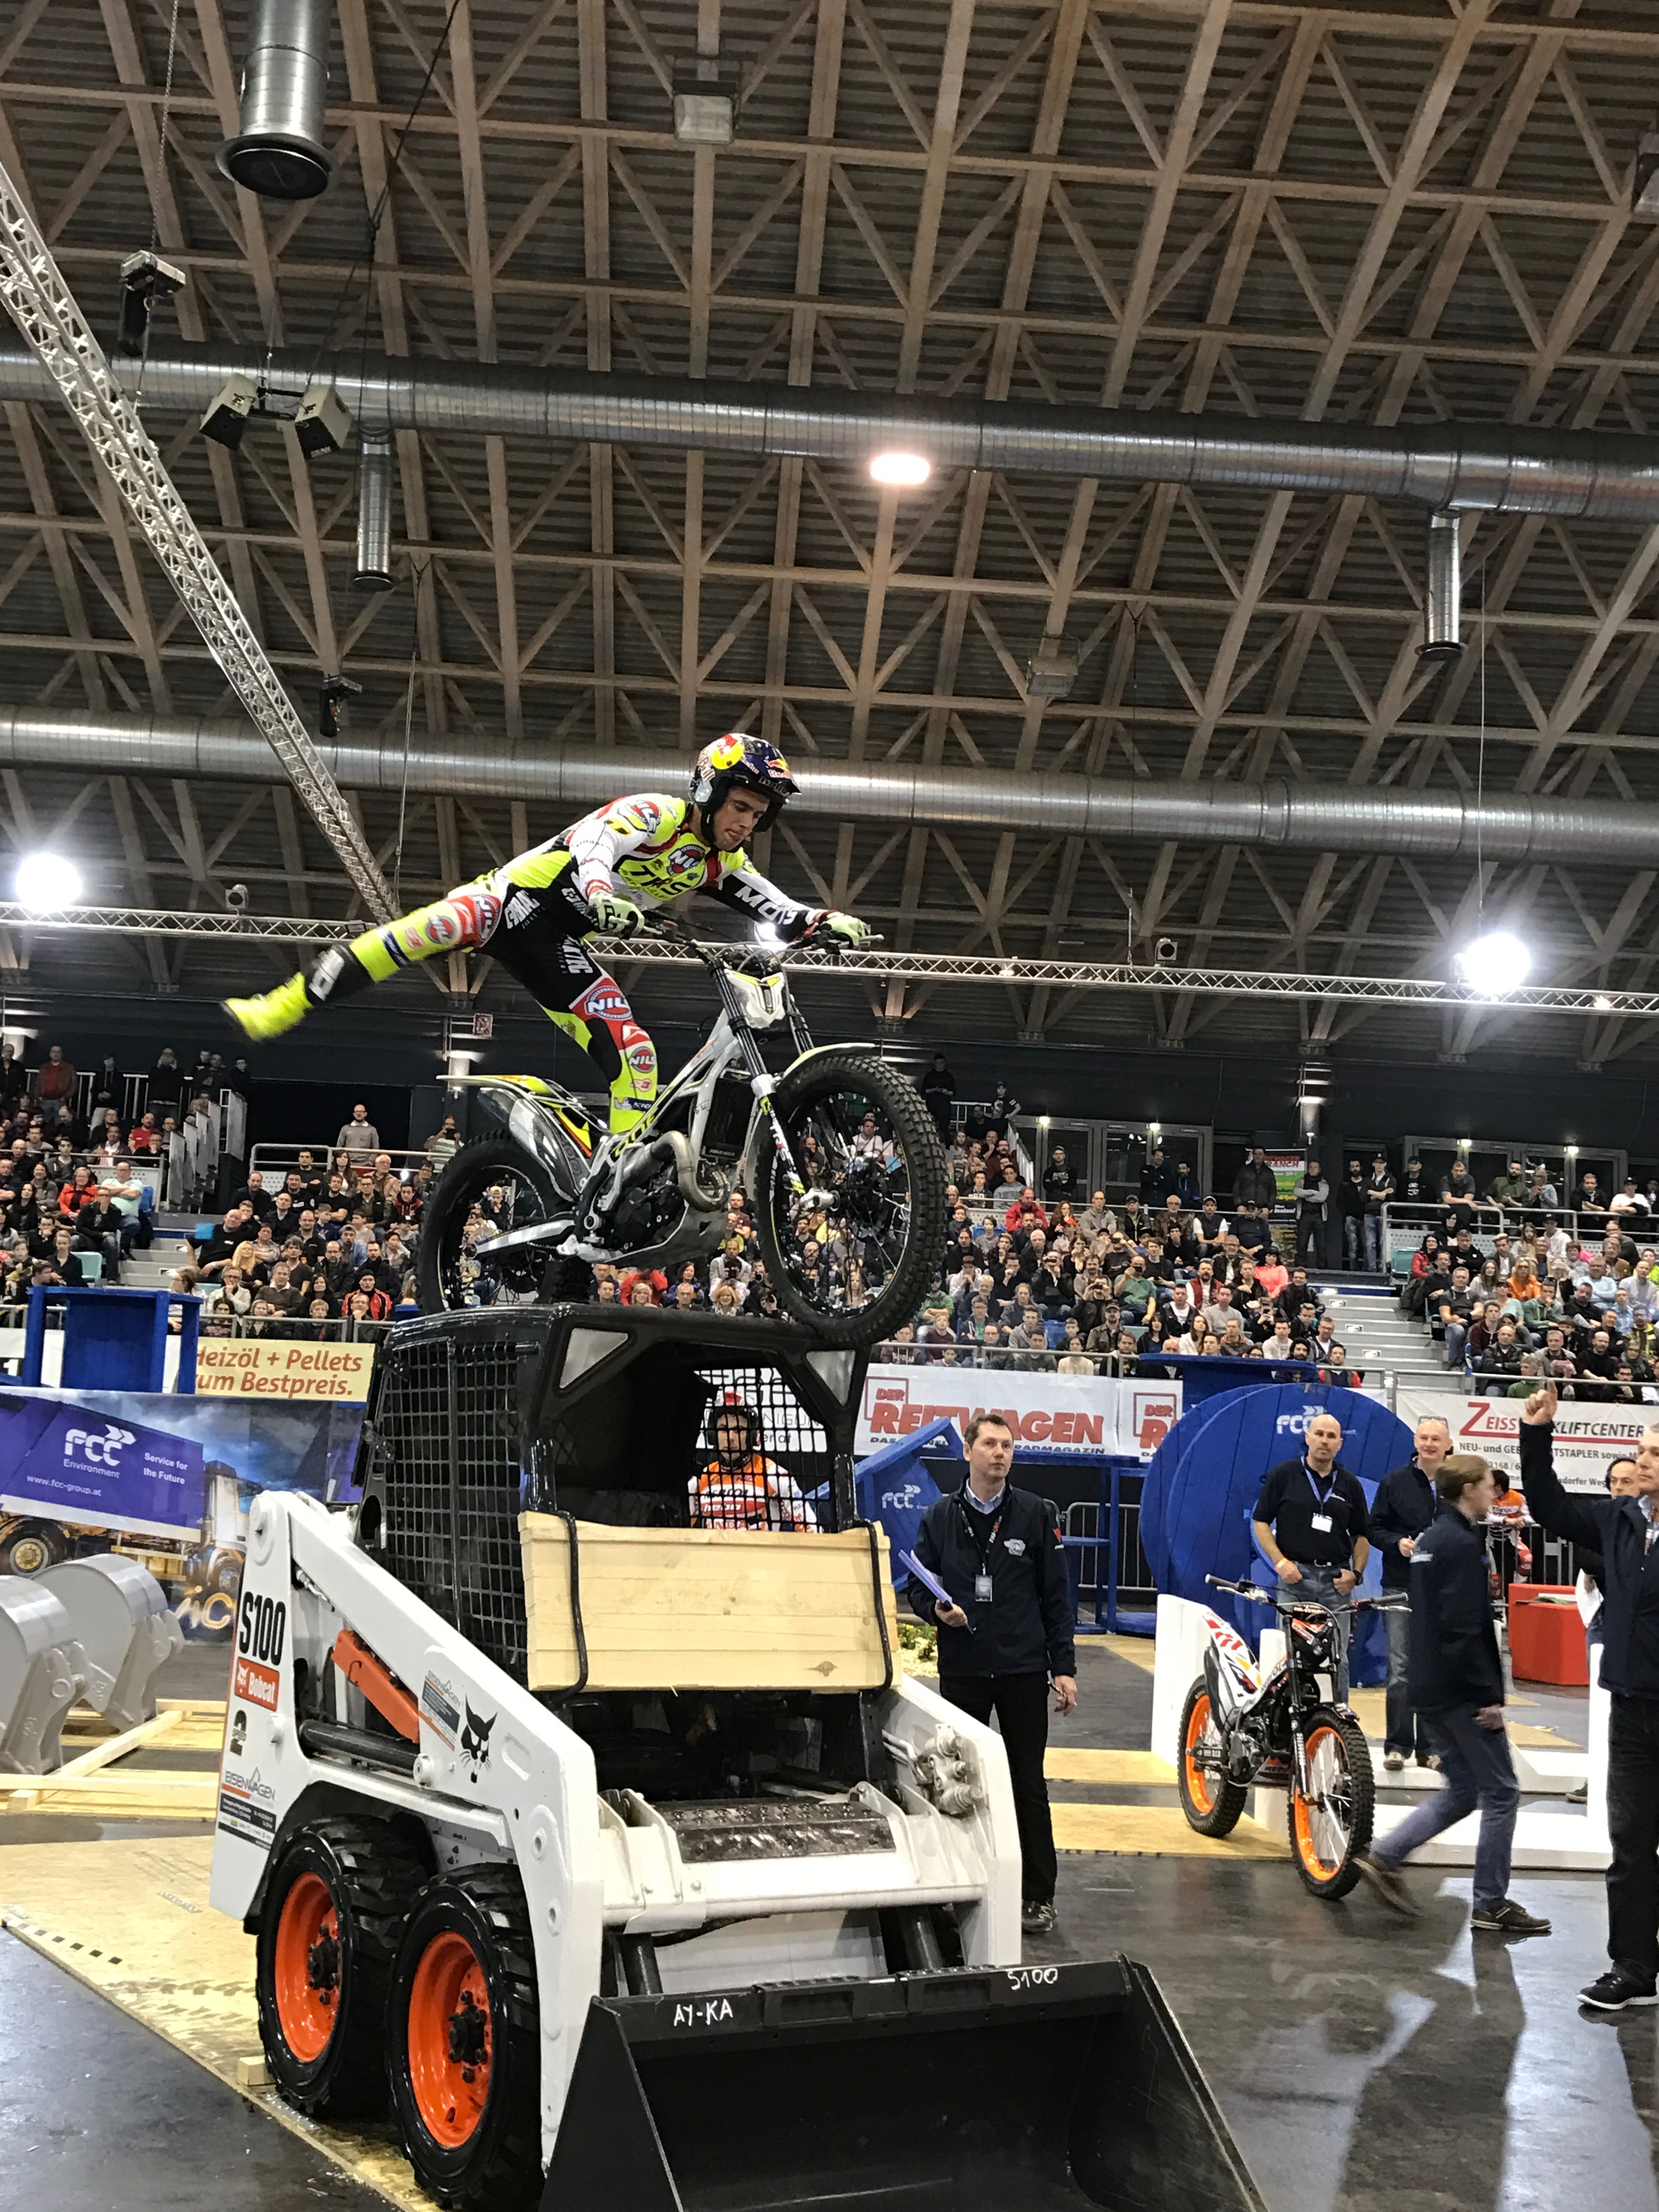 Bobcat at trial World Championship